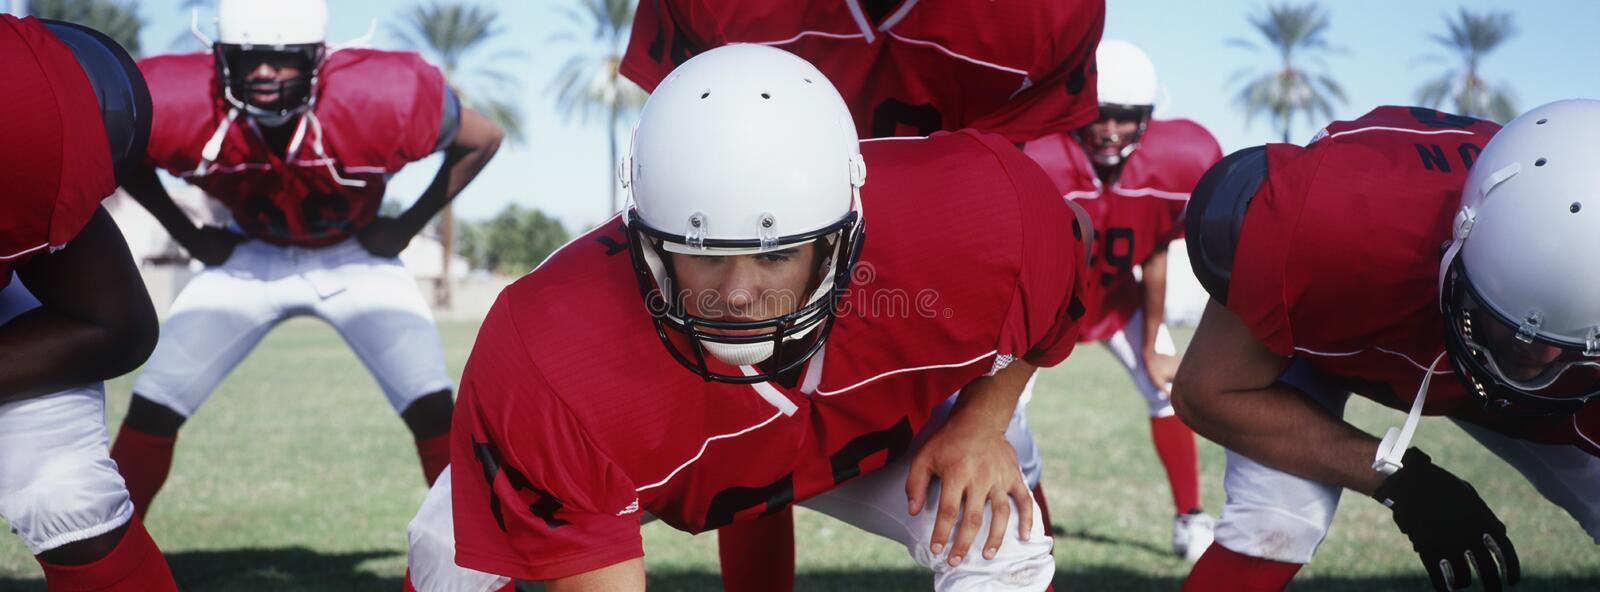 American Football Players At Start Position royalty free stock photos